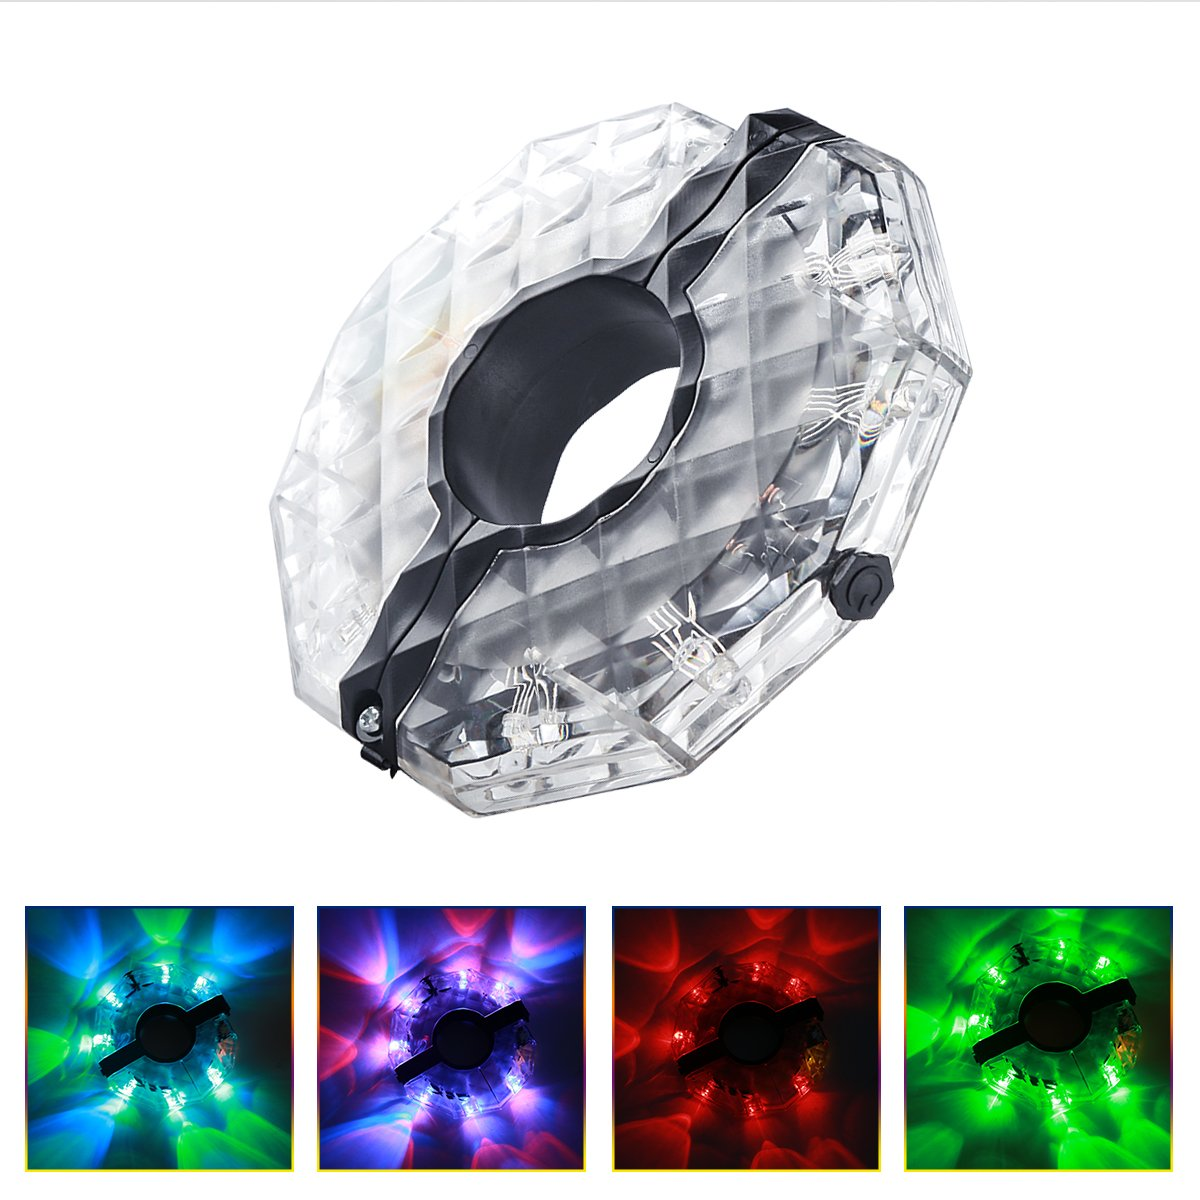 PRE Bicycle Wheel Lights USB Rechargeable Bike Wheel Hub Lights Waterproof 12 Modes LED Cycling Lights, RGB Colorful Bicycle Spoke Lights for Safety Warning and Decoration